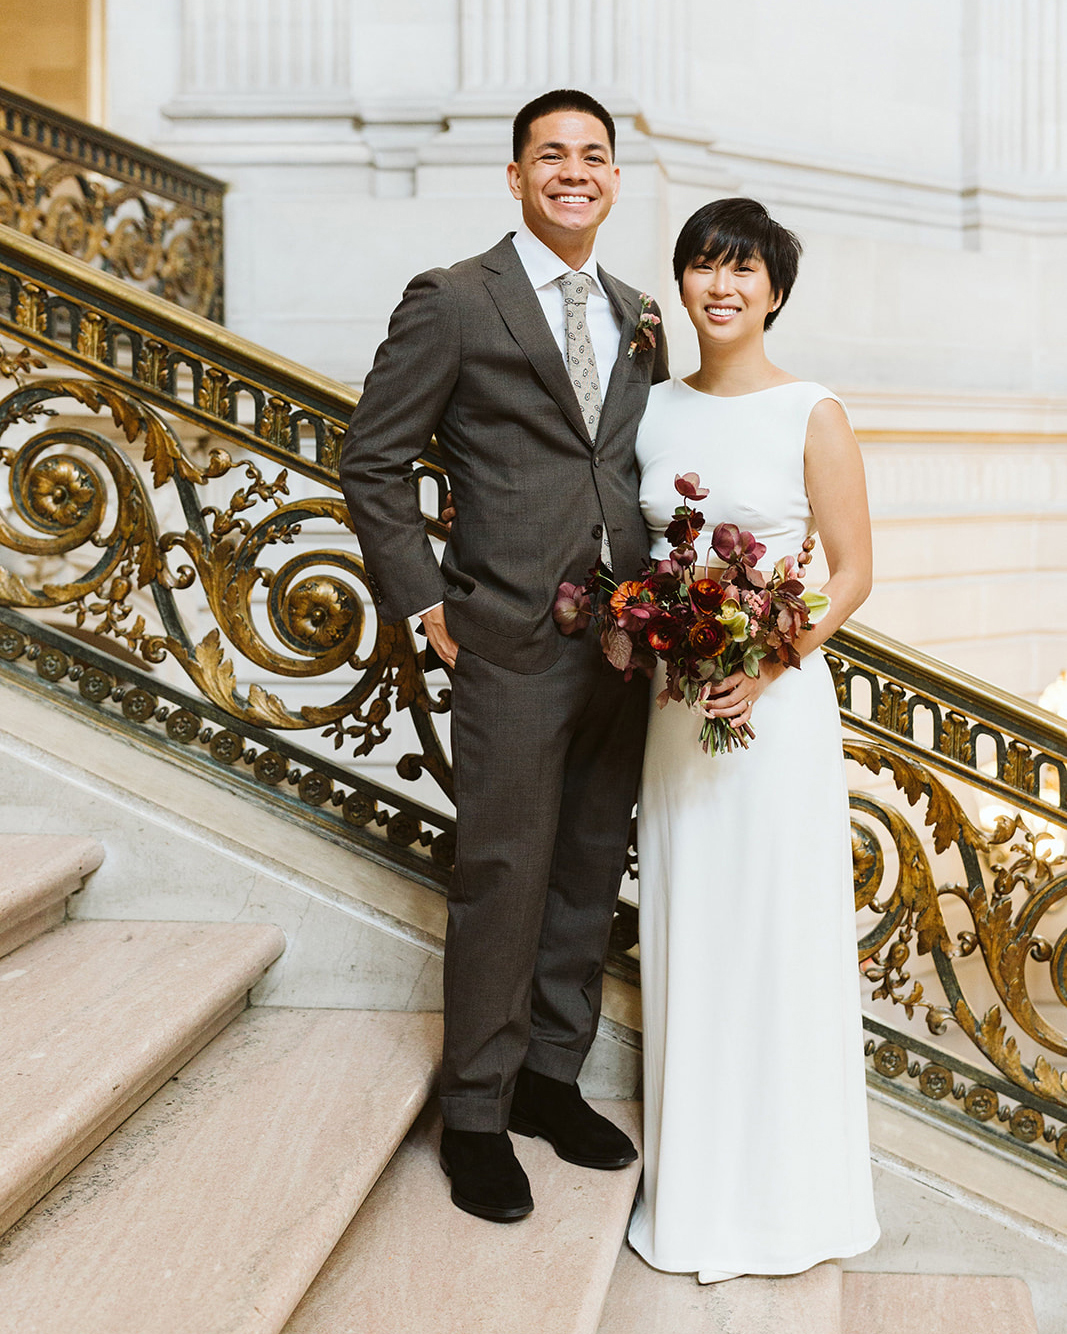 bride groom pose on stairway decorative gold railing